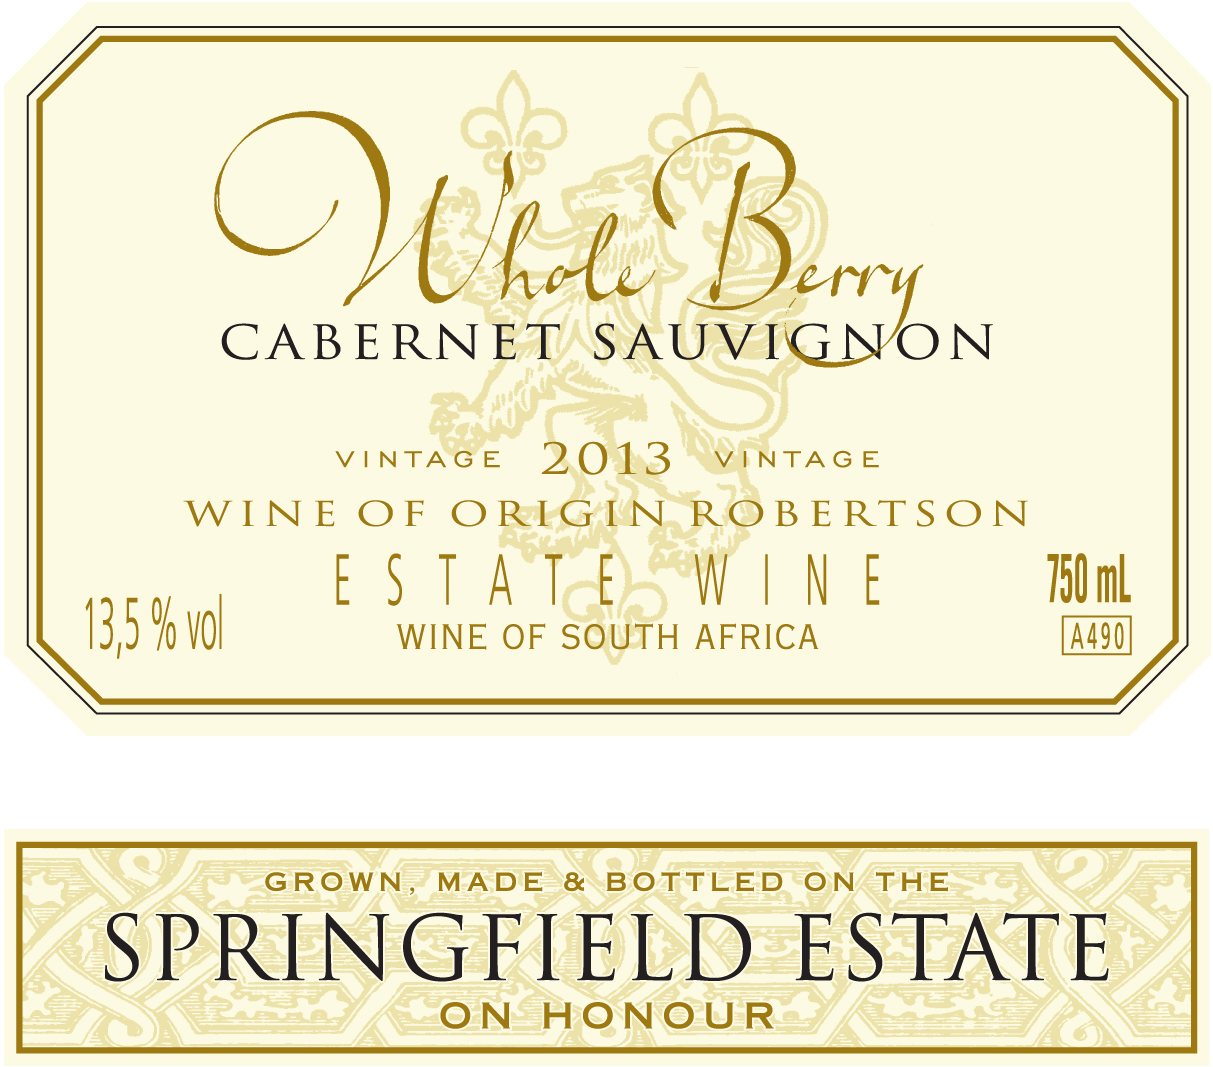 Whole Berry Cabernet Sauvignon